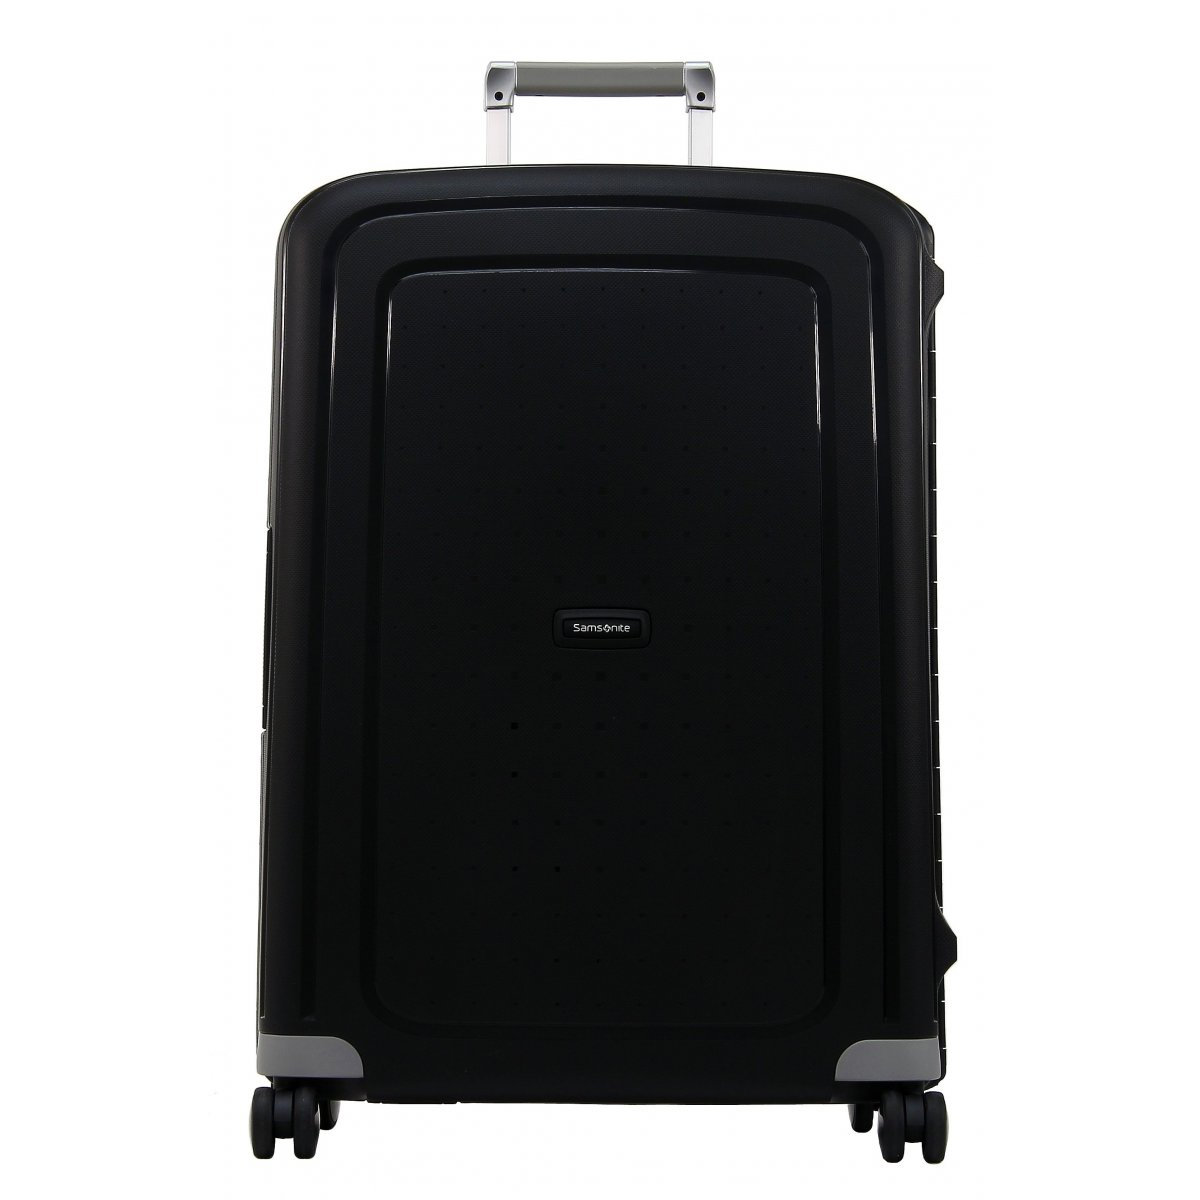 valise samsonite s cure spinner 69 cm scure07 couleur principale noir valise pas cher. Black Bedroom Furniture Sets. Home Design Ideas